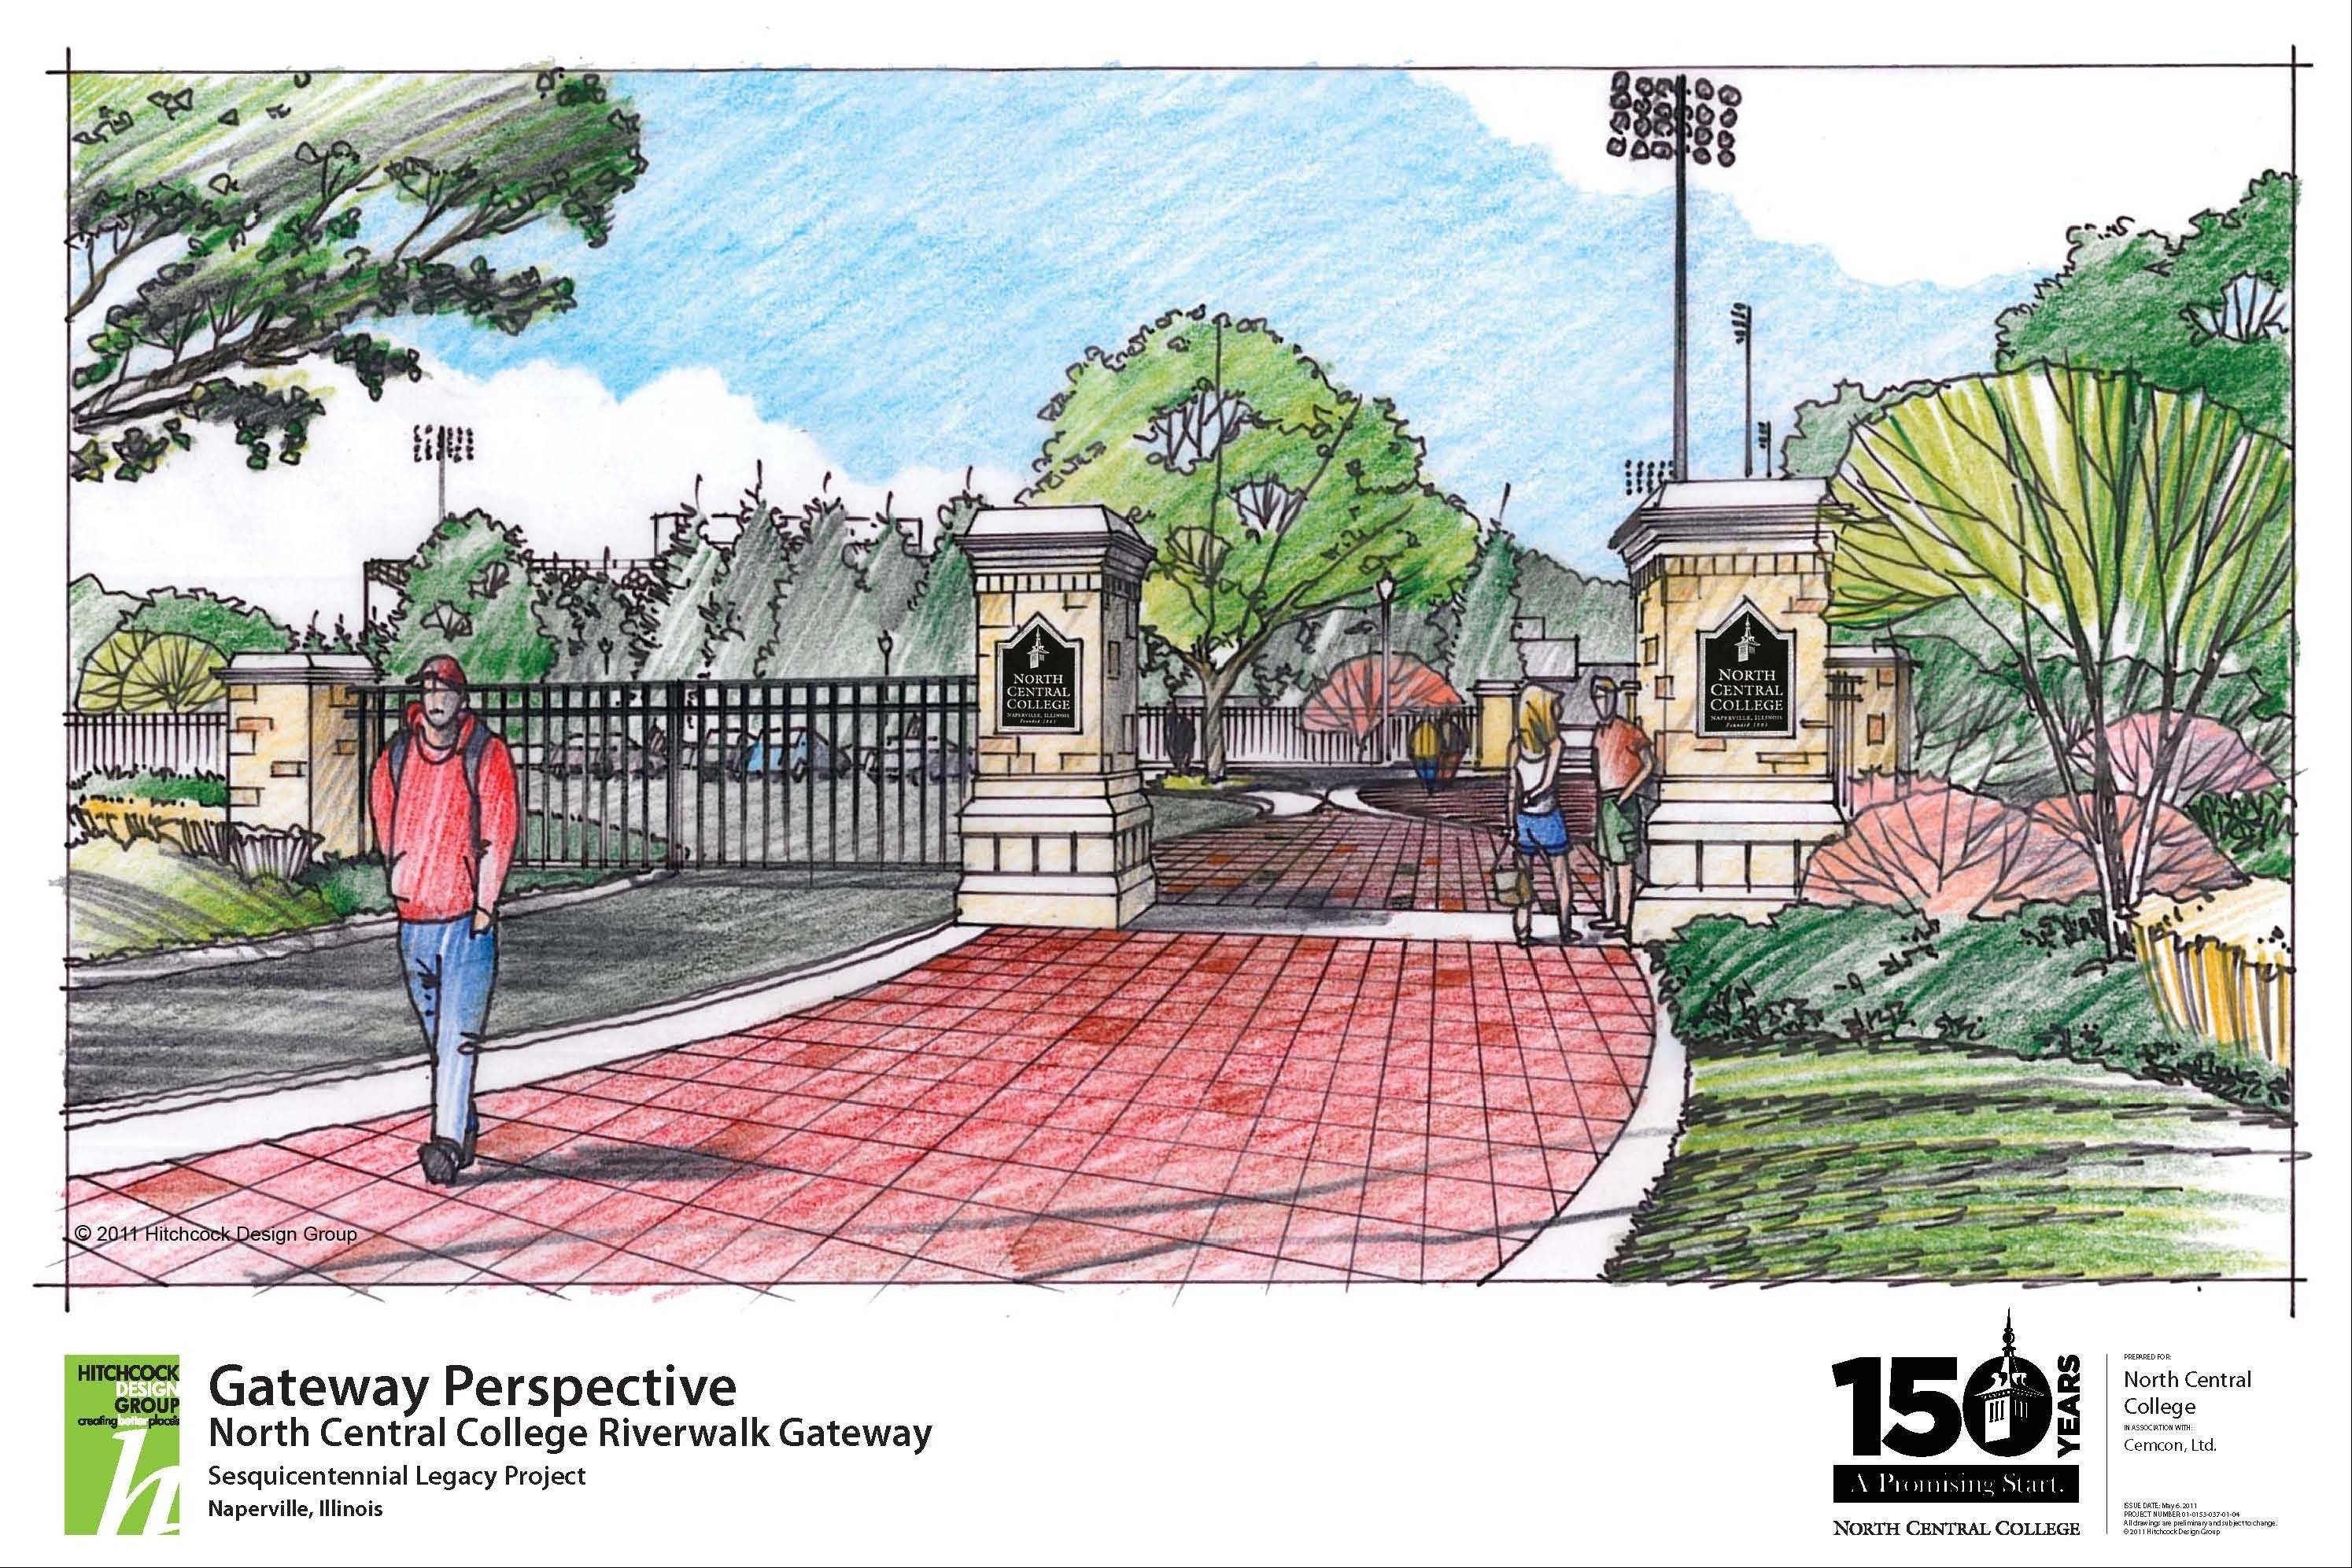 North Central College and the Naperville Riverwalk Foundation are seeking donations to build a $1.5 million gateway between the Riverwalk and college property.